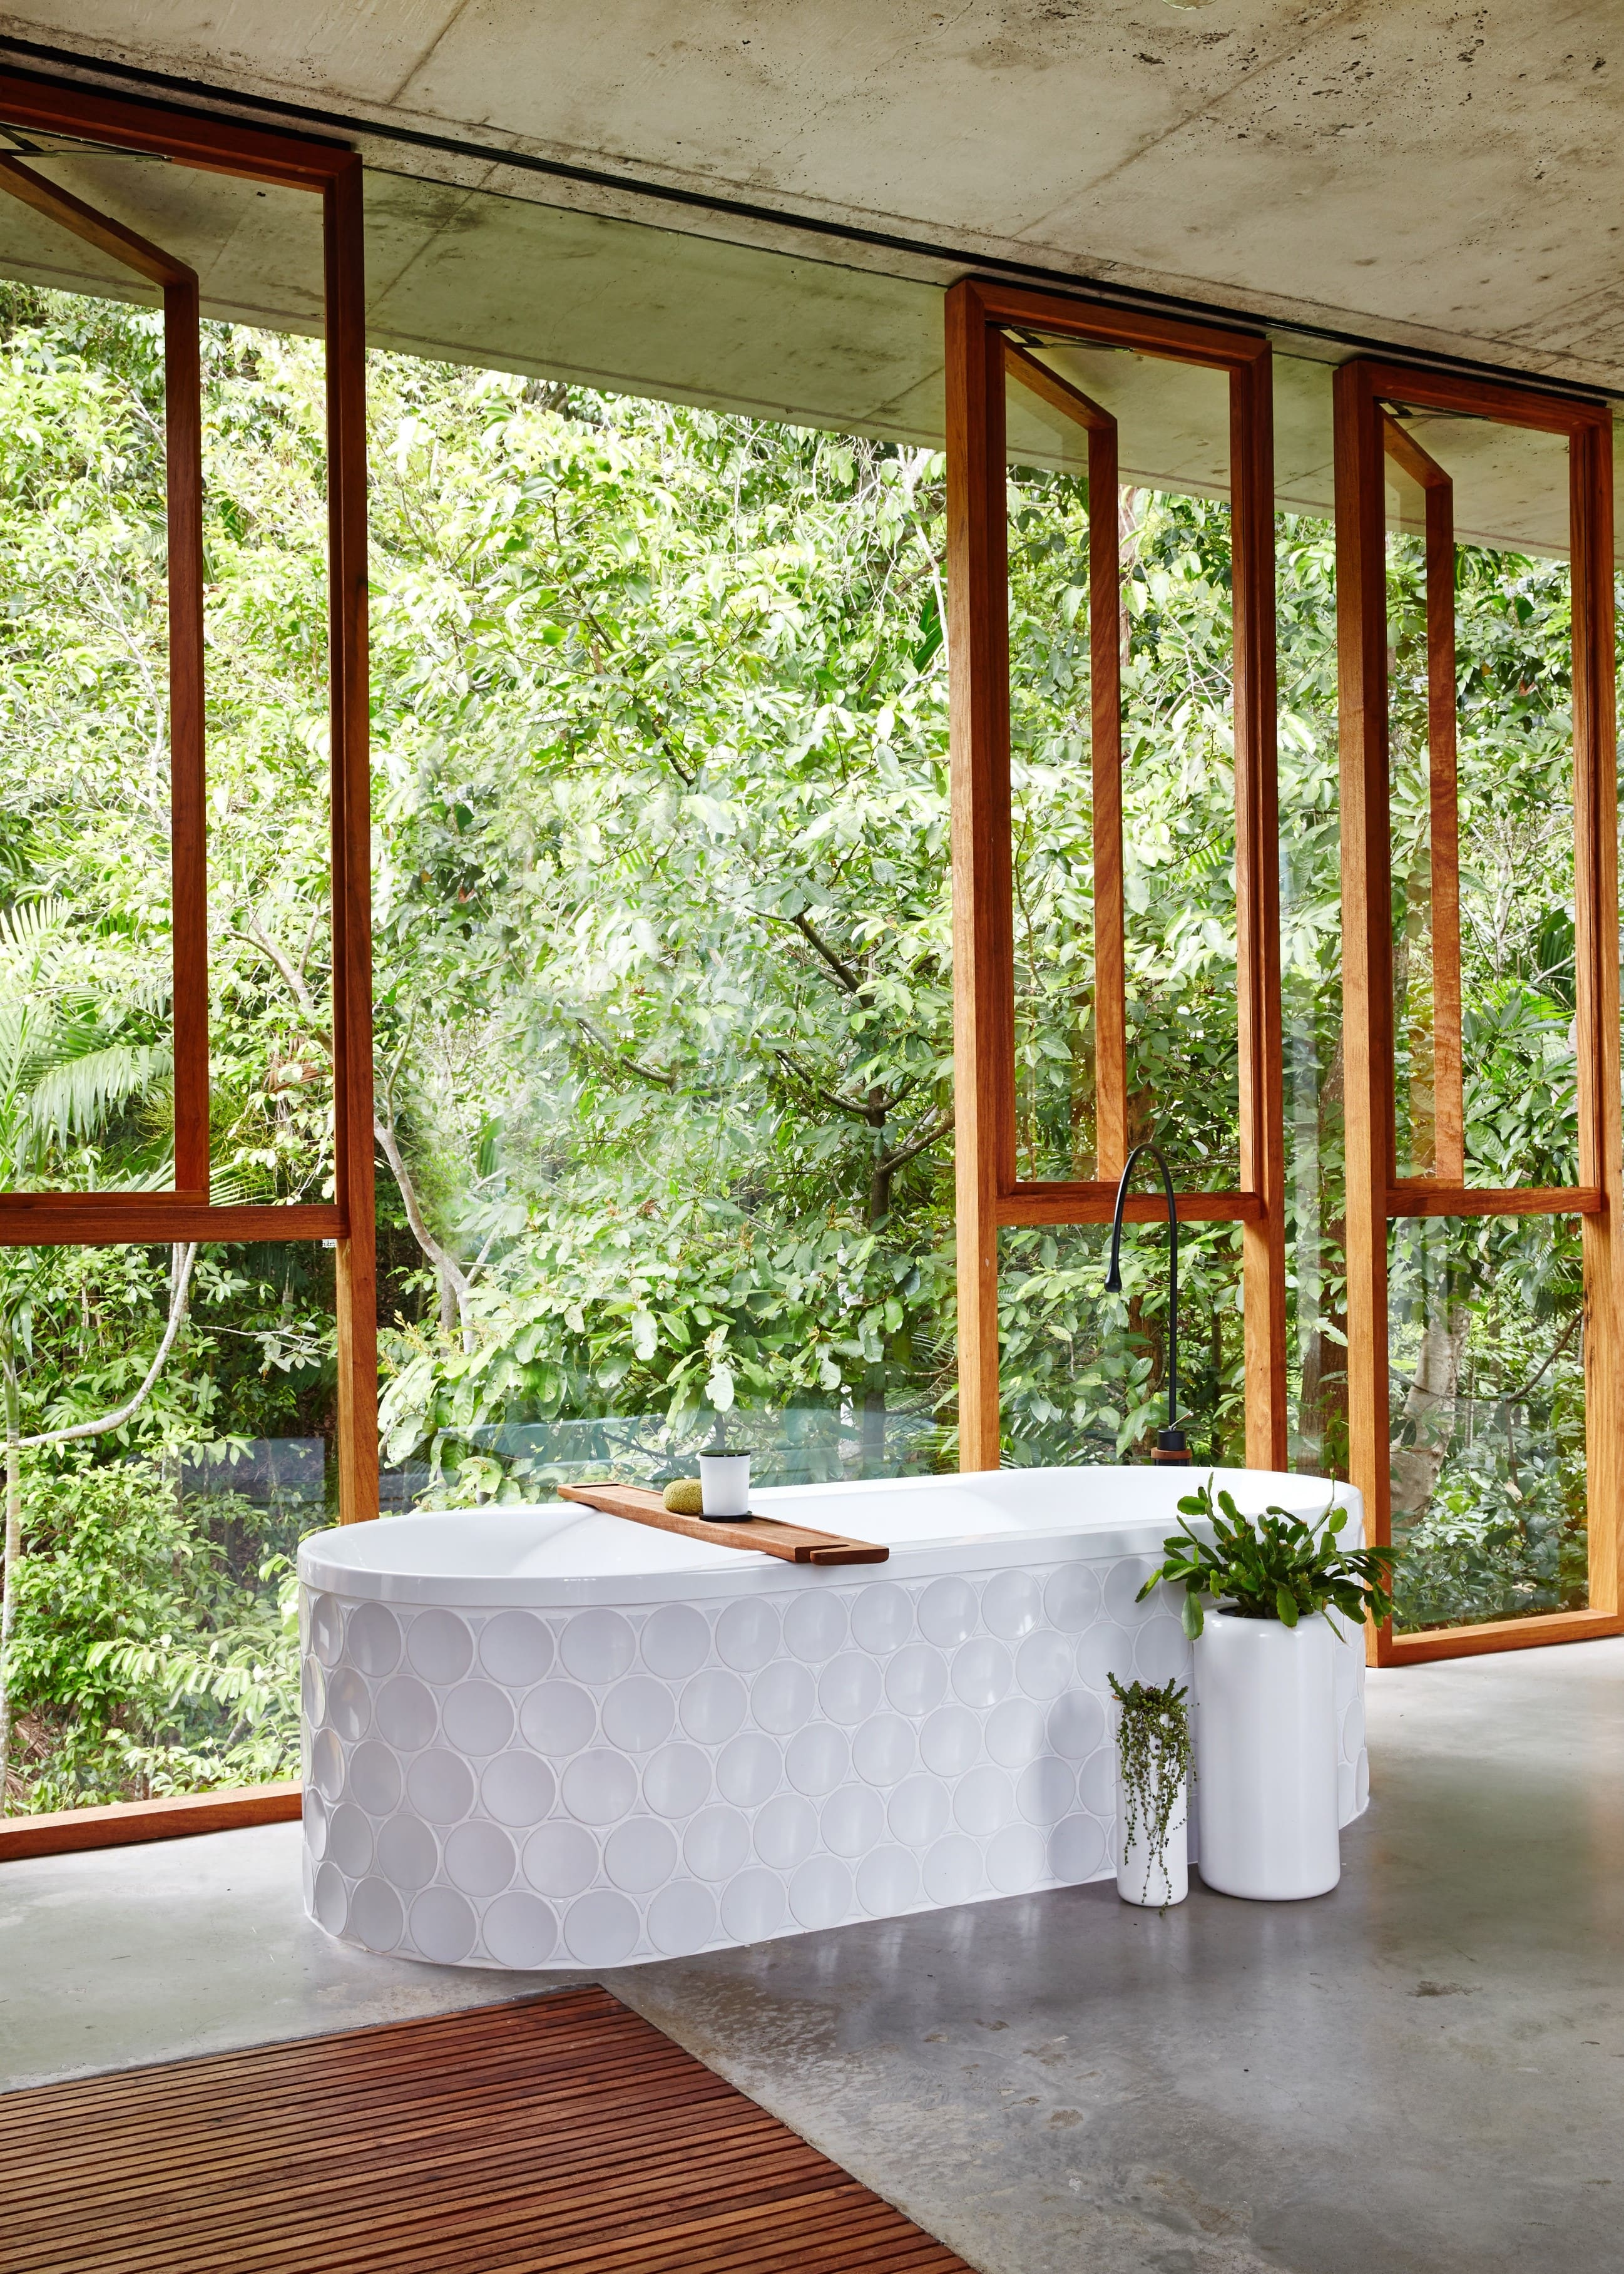 These Observations Led To Many Insights That Helped To Guide The Design Features Of Planchonella House